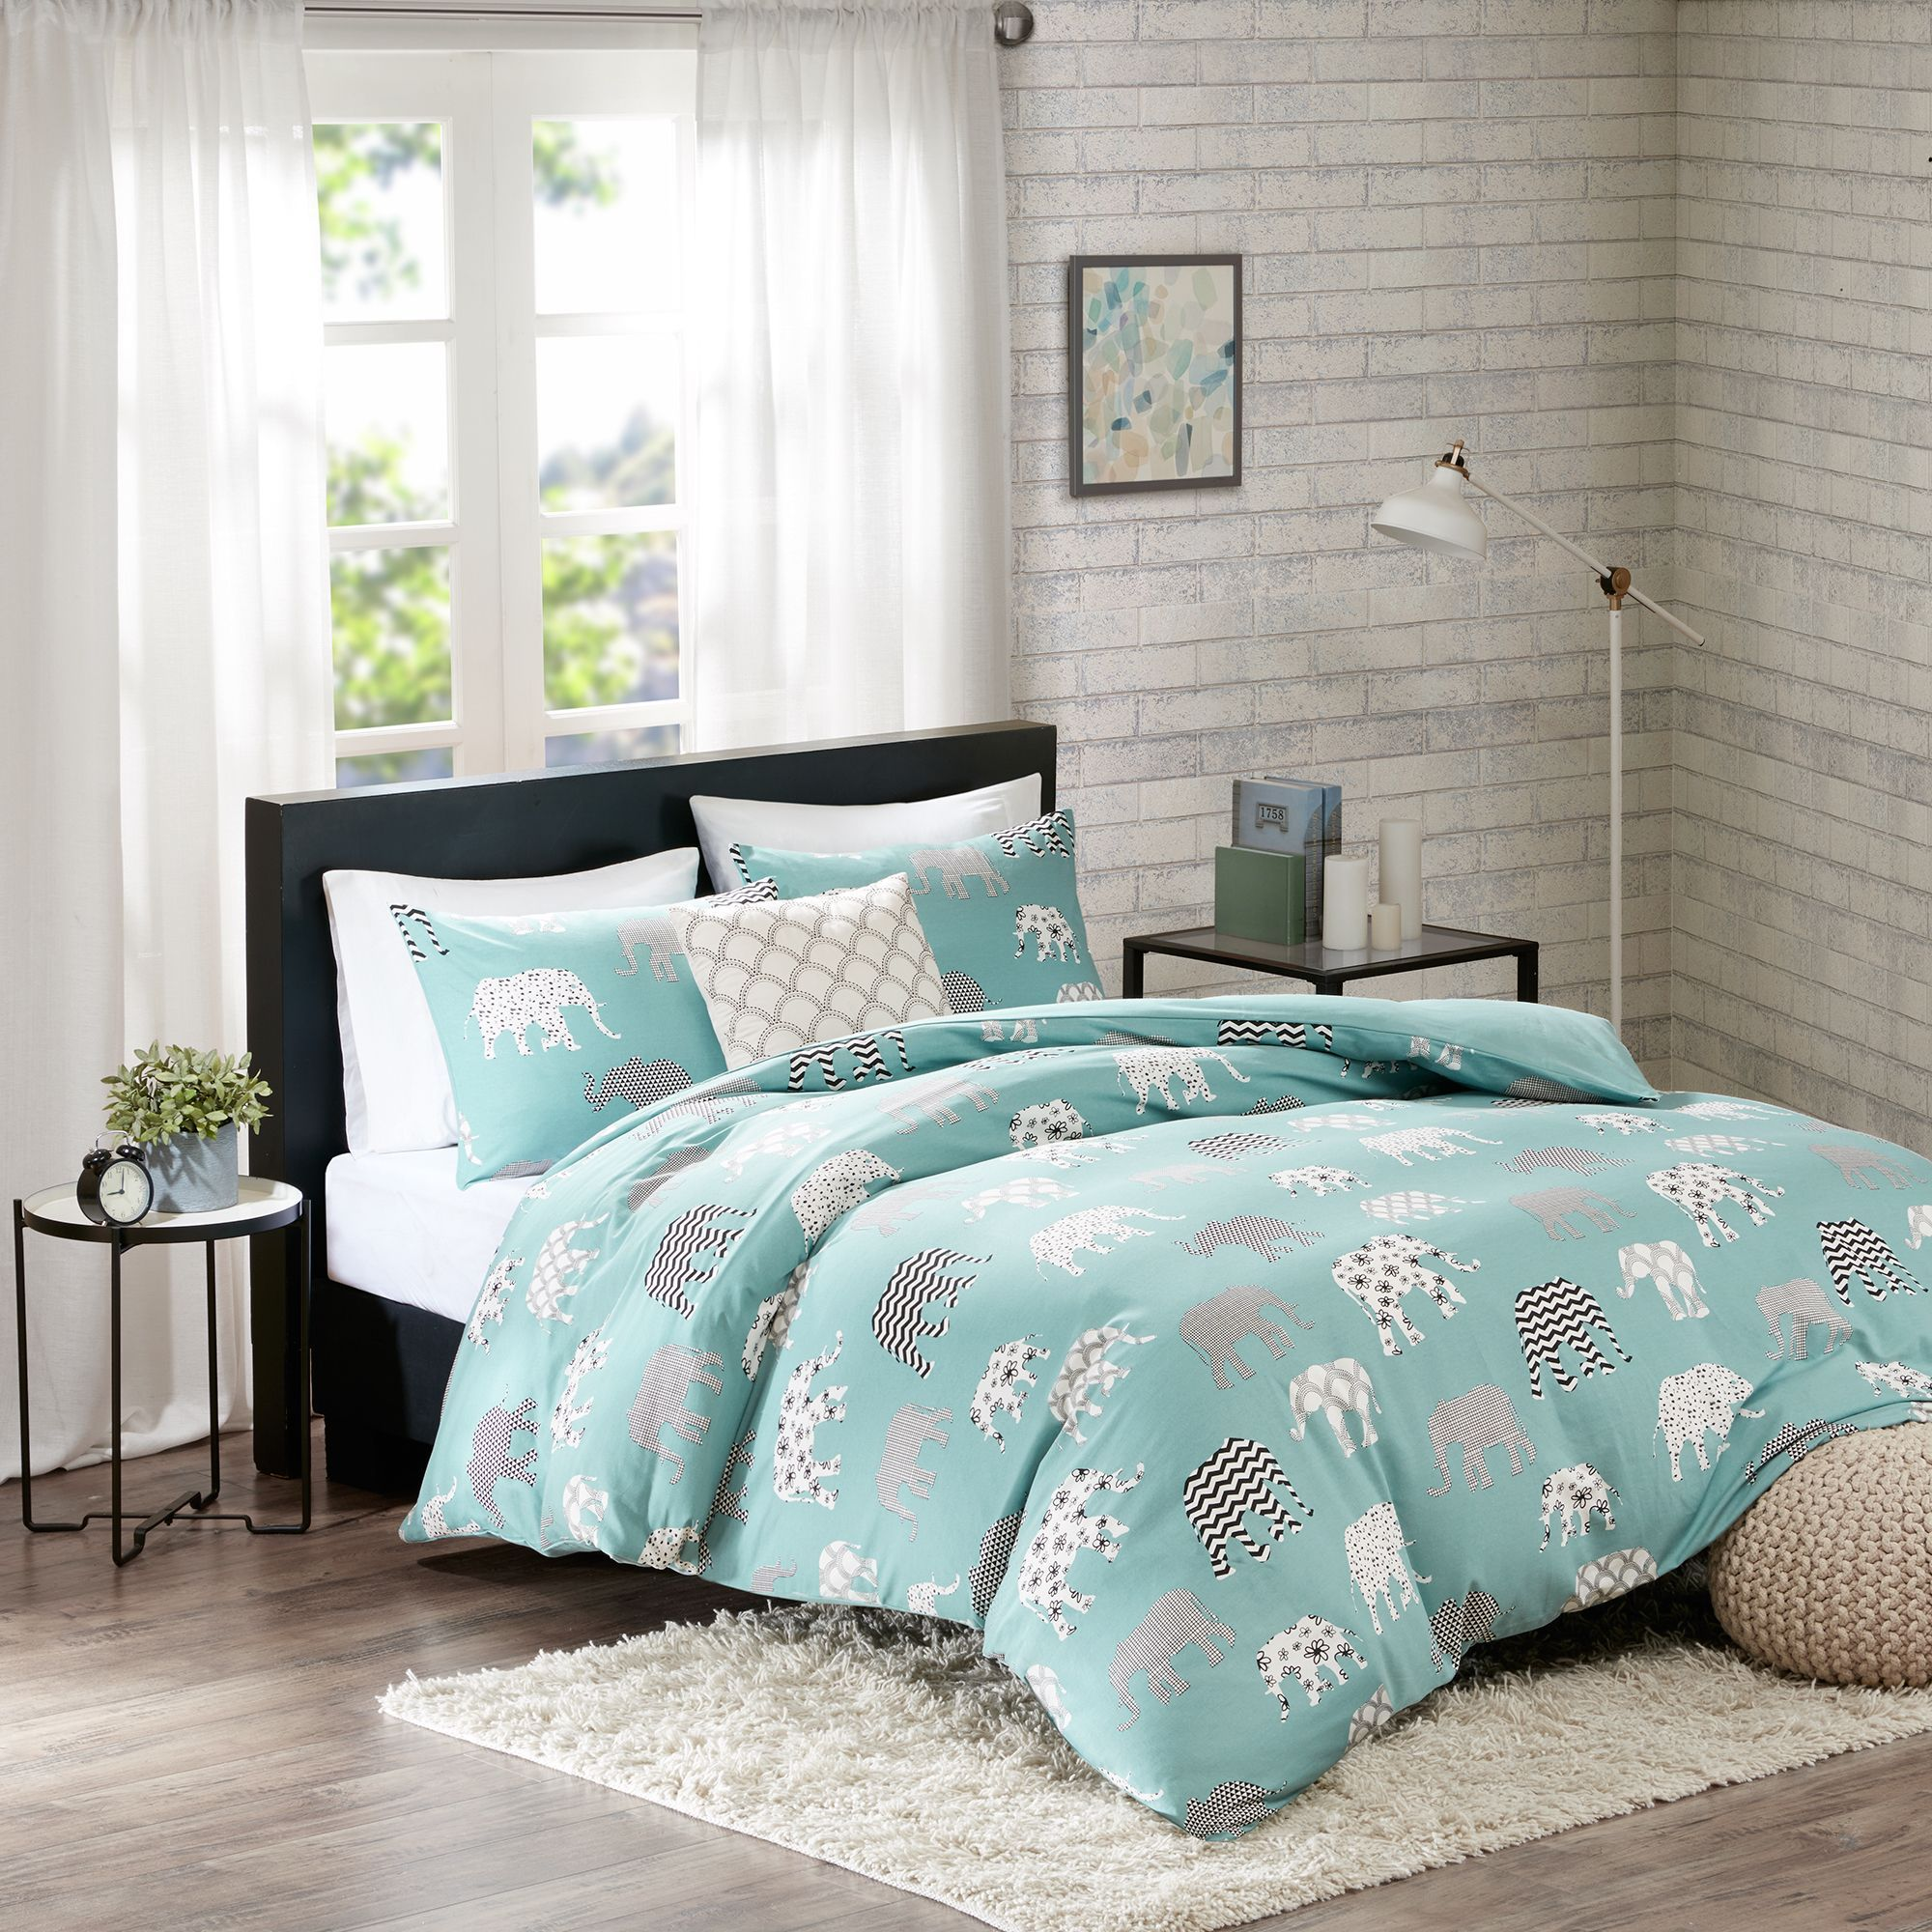 a ernest dwp elise belk elephant product collection src duvet layer home desktop p cover james comp zoom quilt